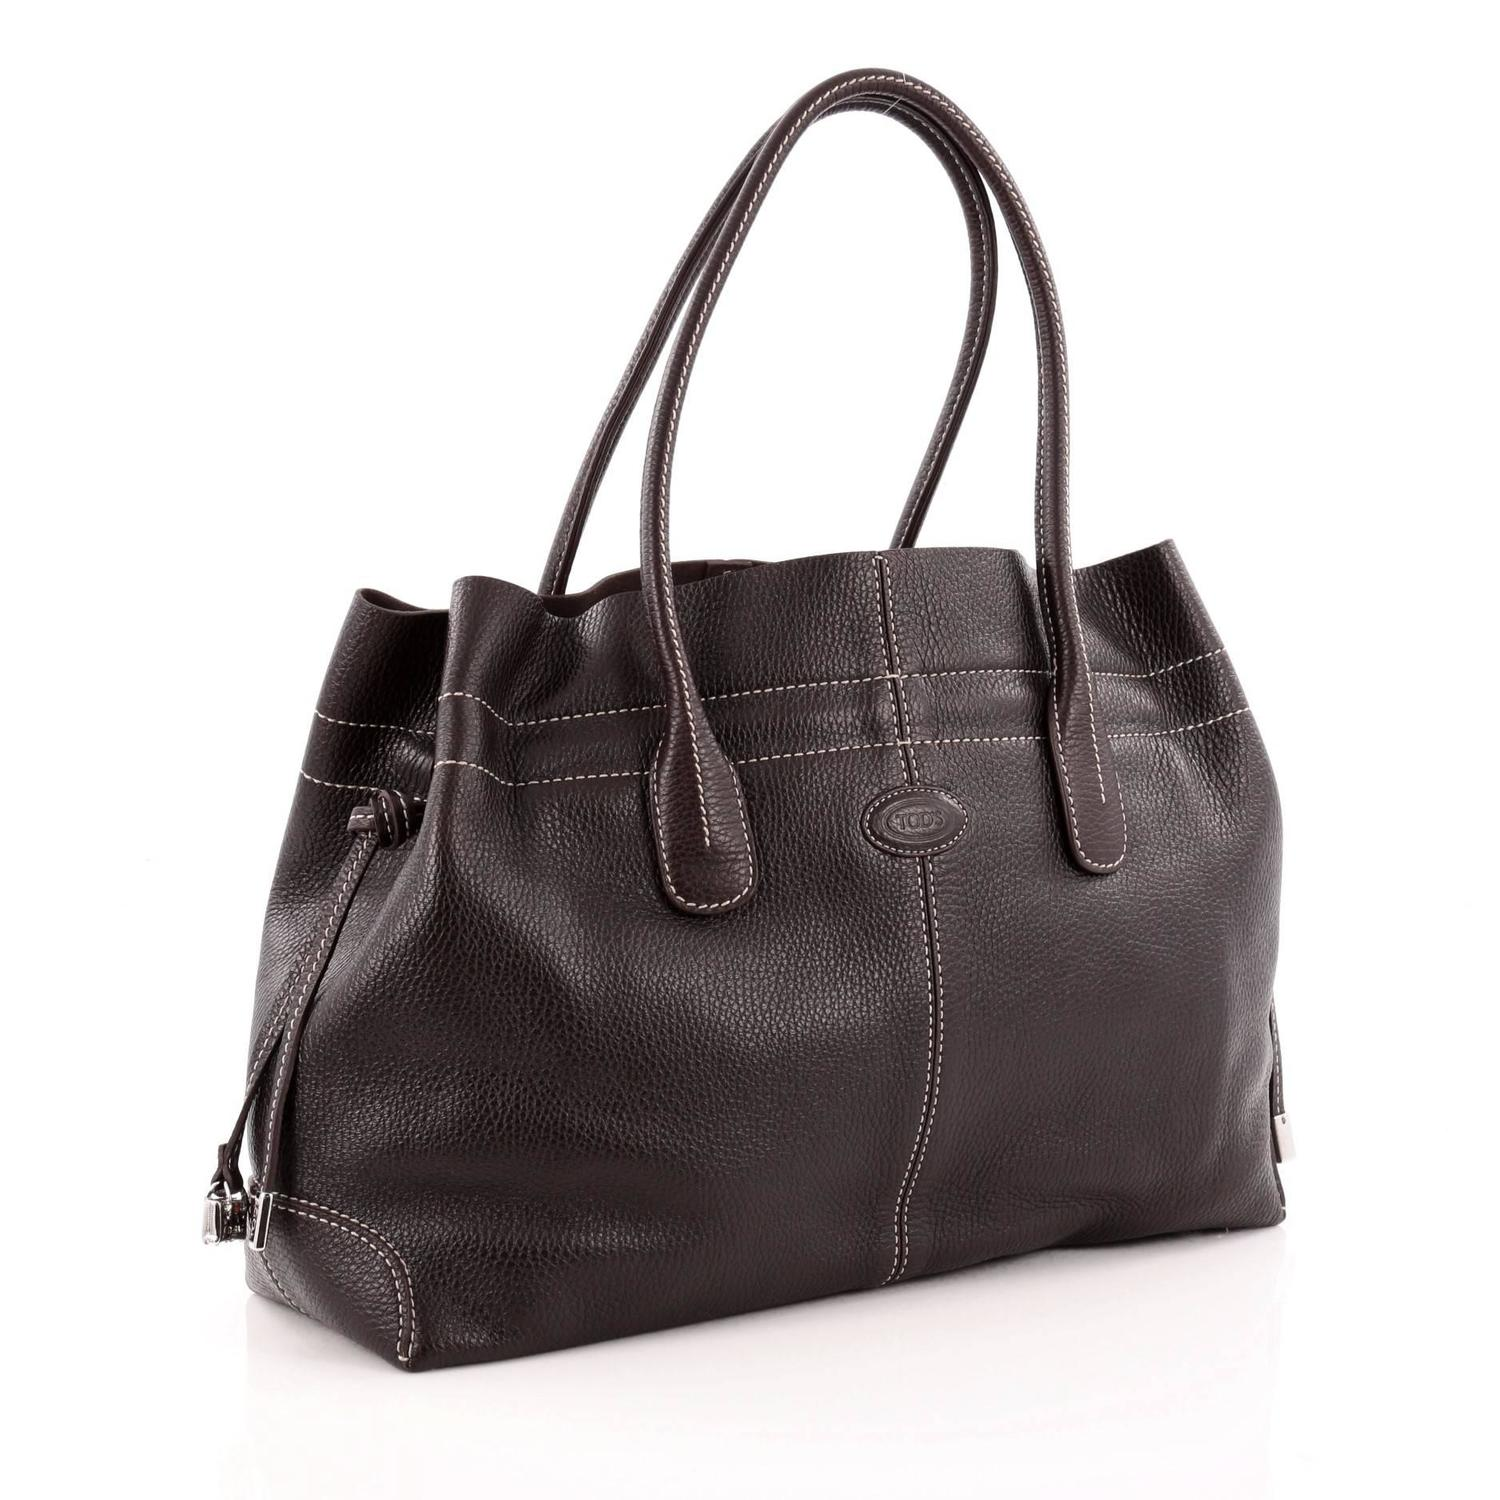 tod 39 s classic d bag tote leather medium for sale at 1stdibs. Black Bedroom Furniture Sets. Home Design Ideas